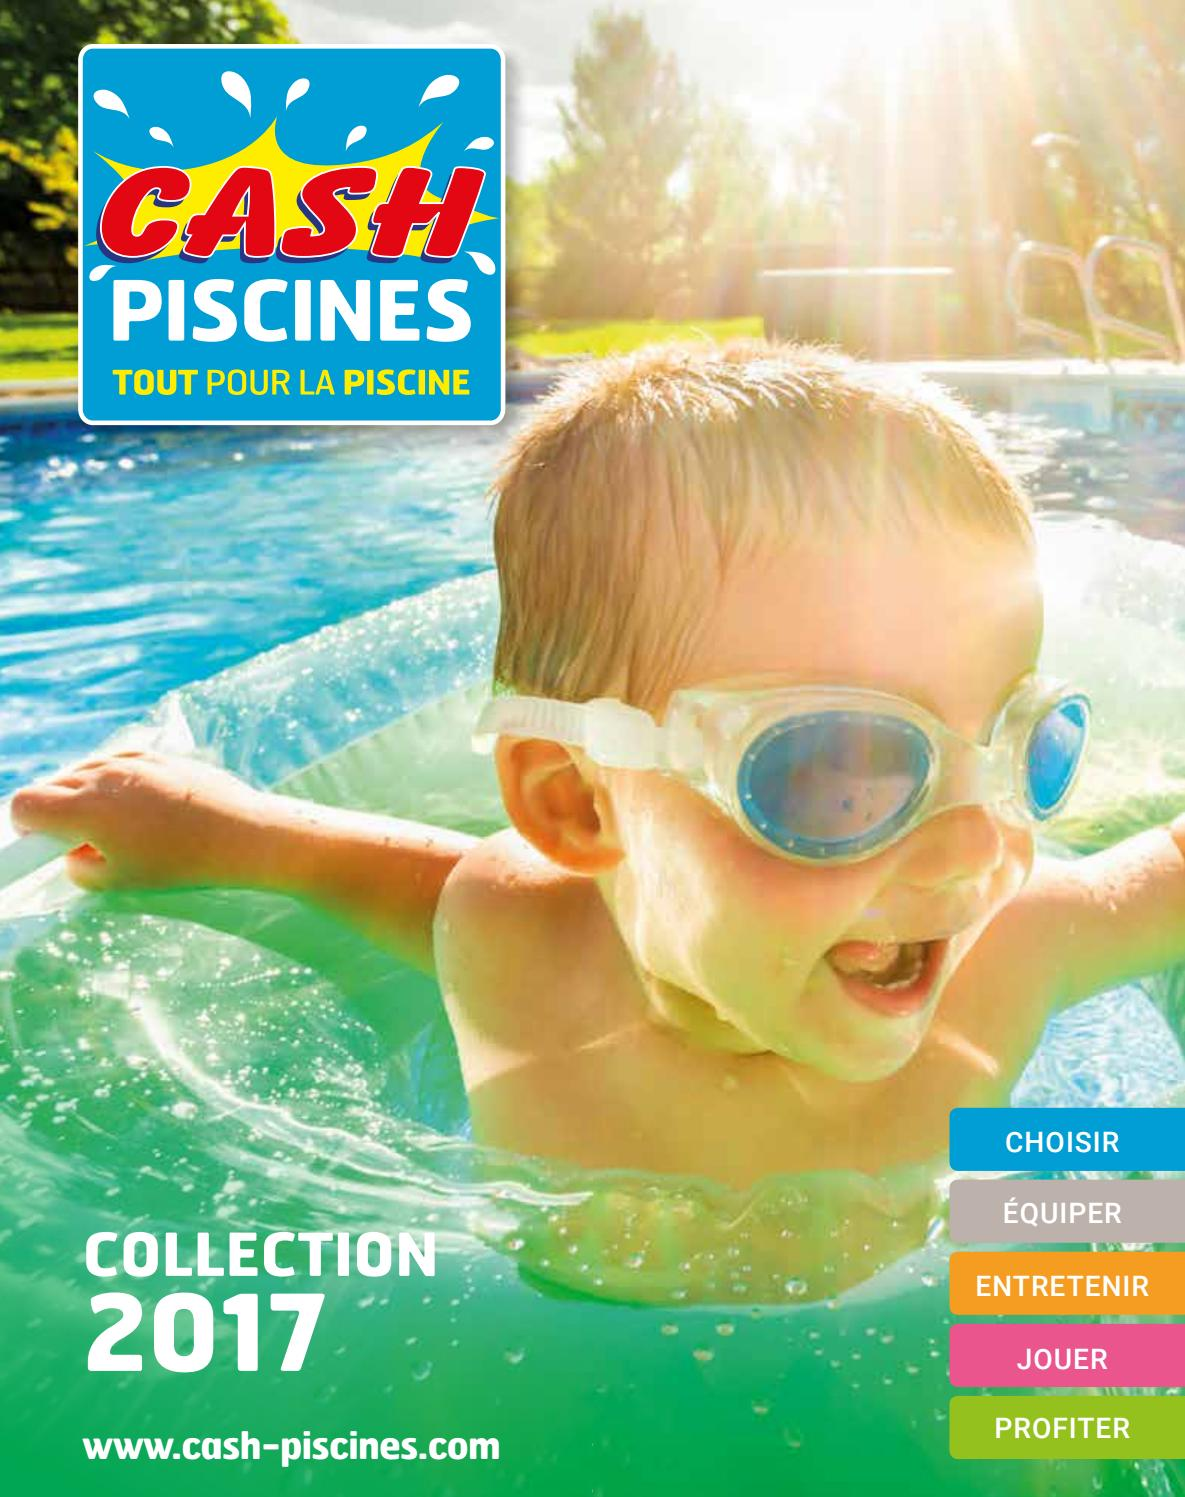 Catalogue cash piscine 2017 by octave octave issuu - Piscine cash piscine ...